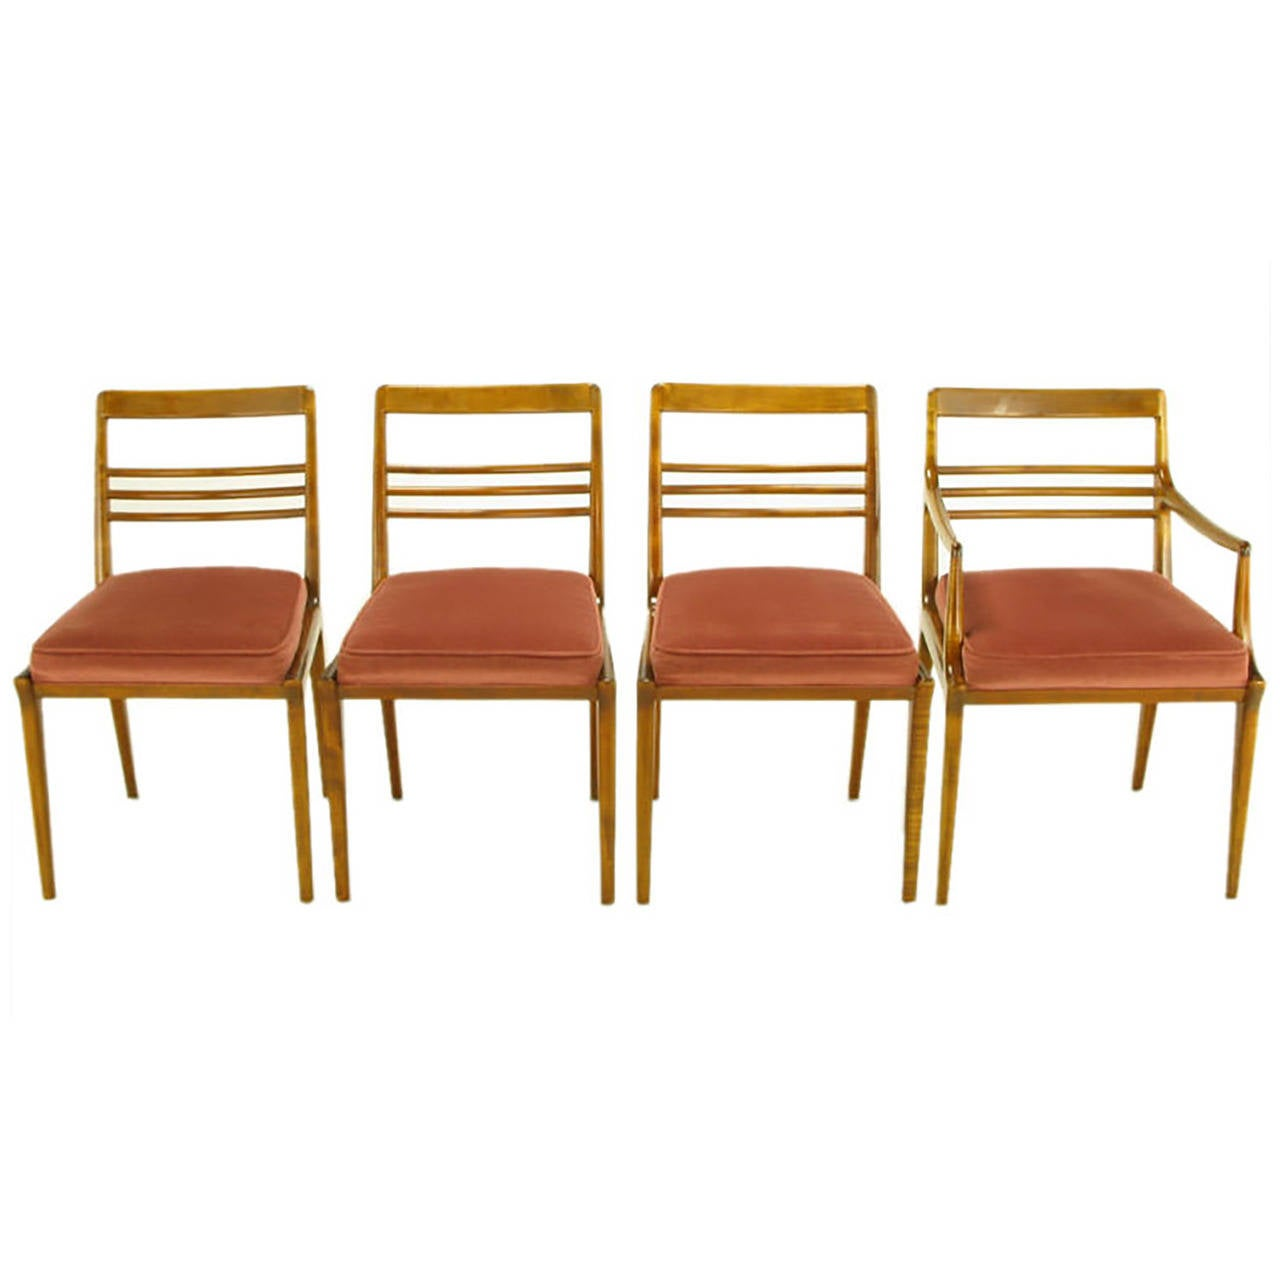 Four Renzo Rutili Walnut and Upholstered Dining Chairs For Sale